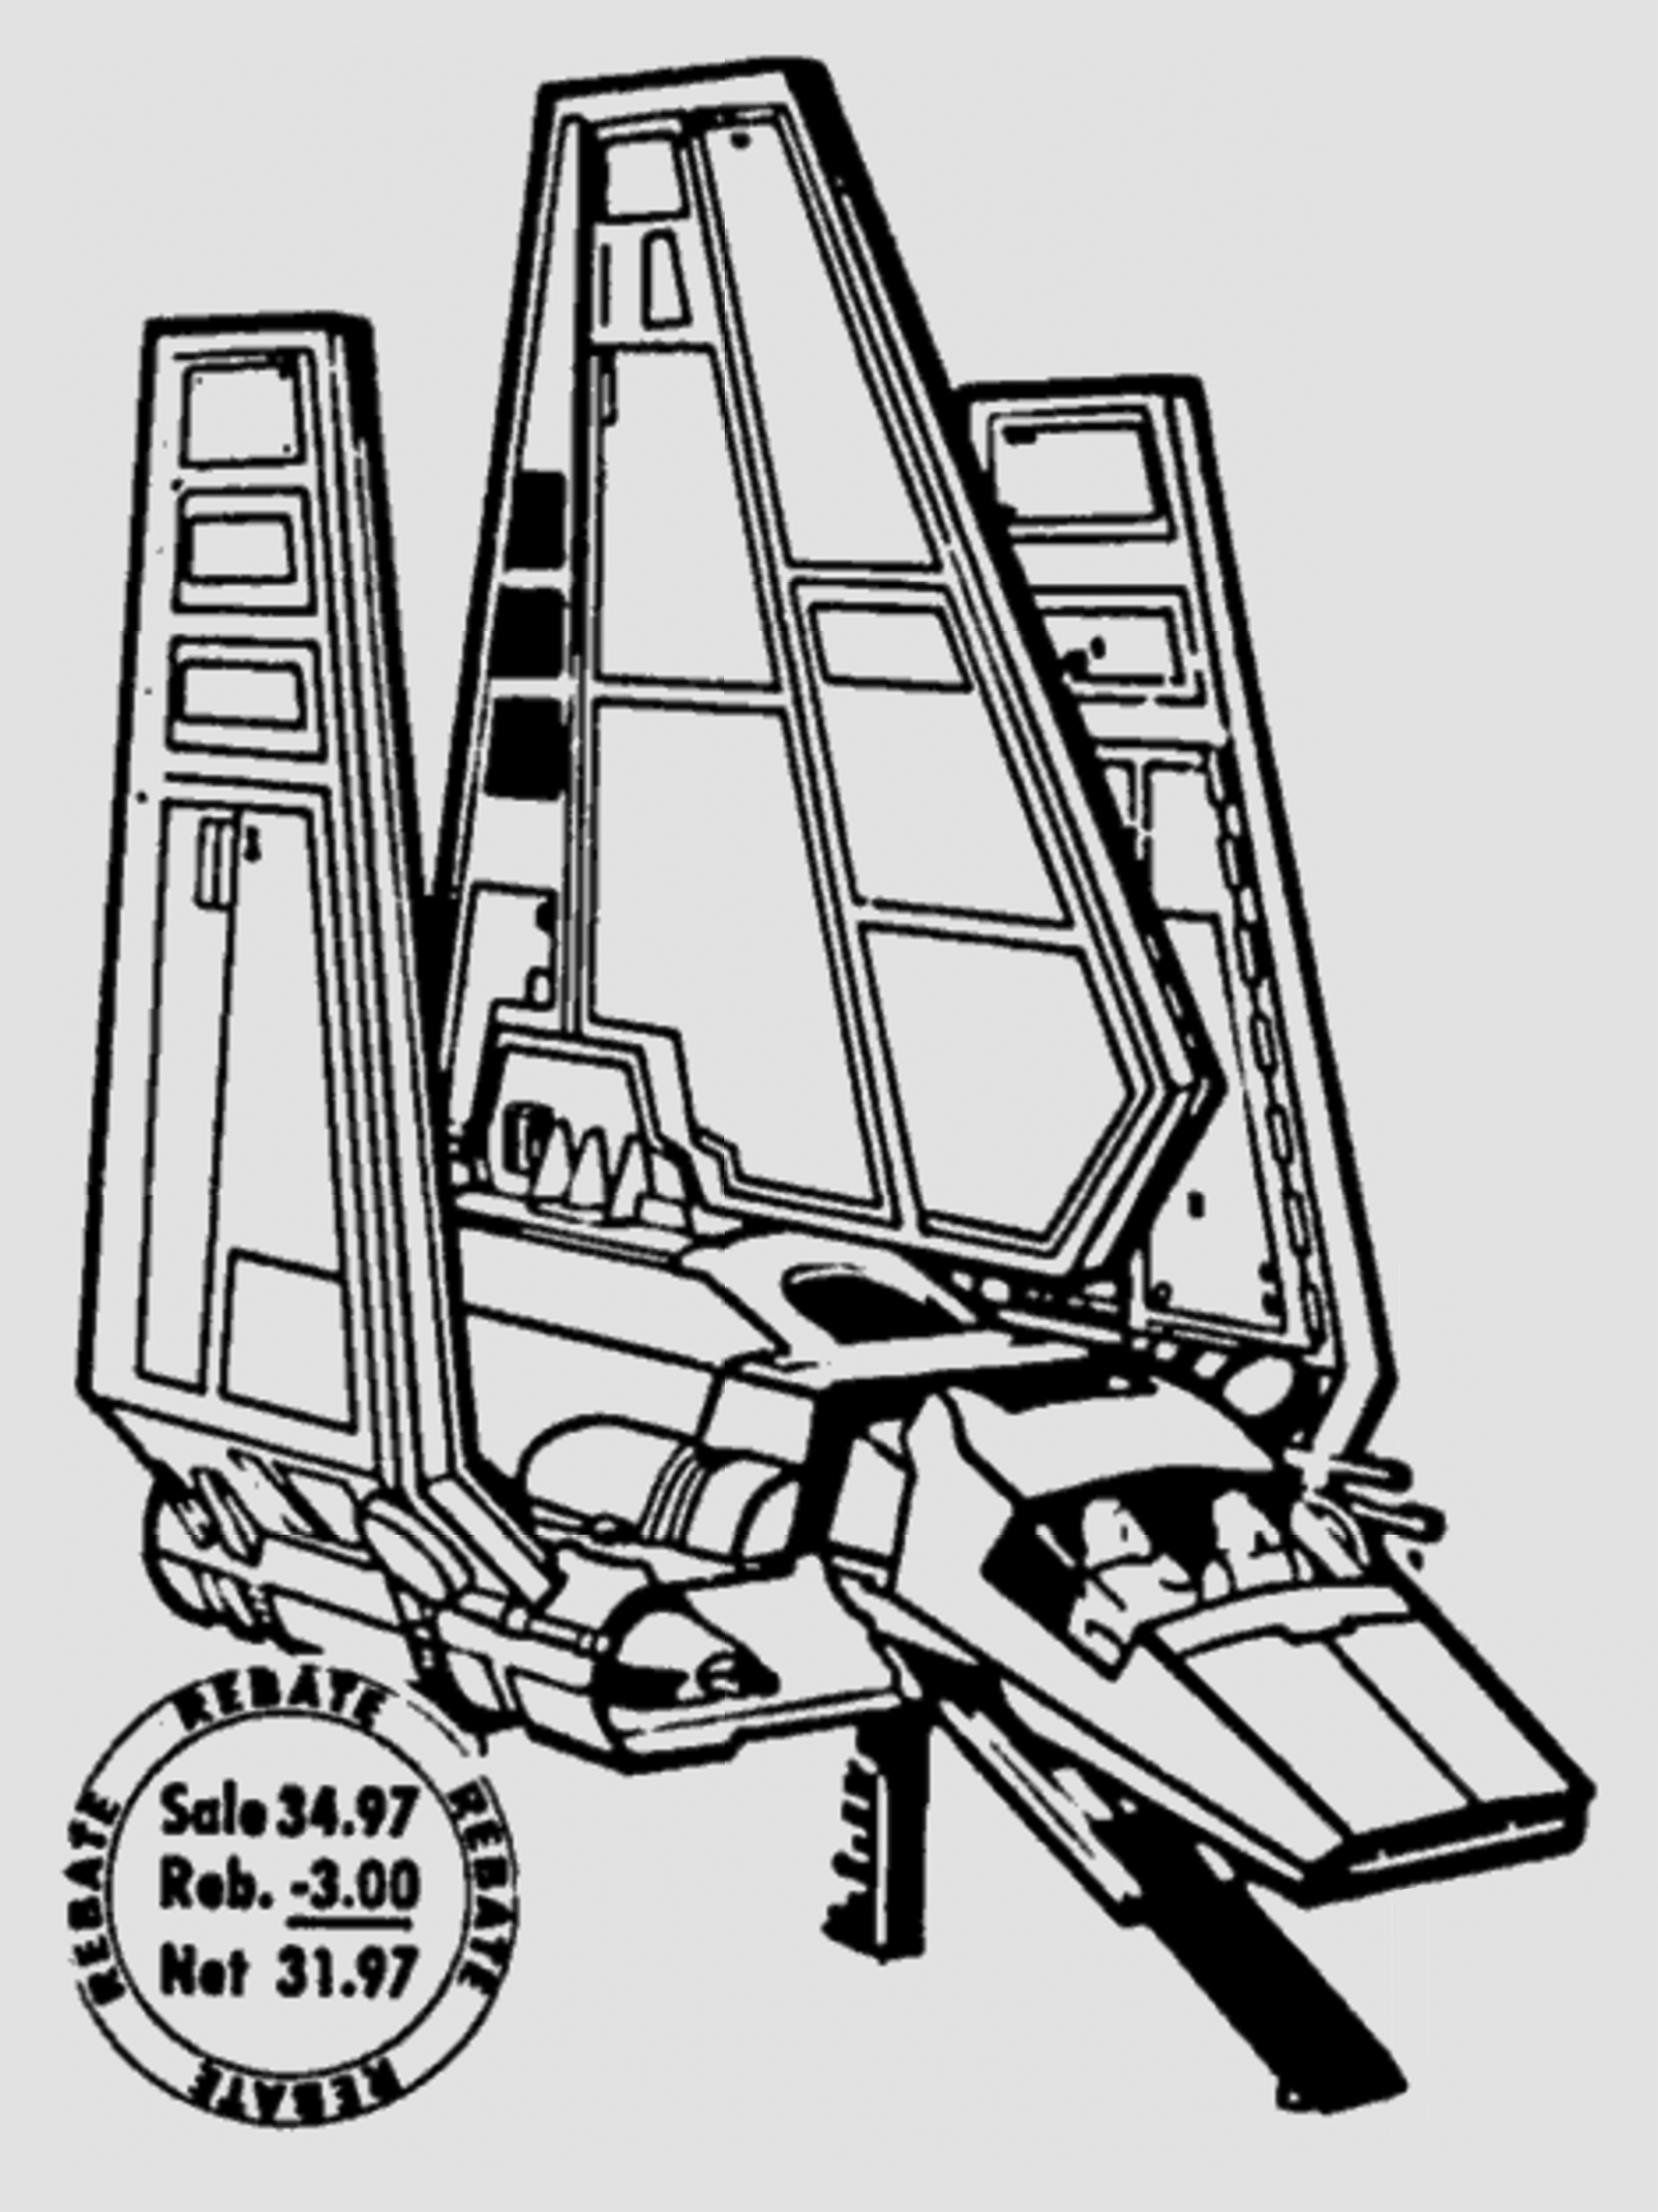 Star wars vehicles black and white clipart vector freeuse download Kenner Star Wars Imperial Shuttle $31.97 After Rebate vector freeuse download